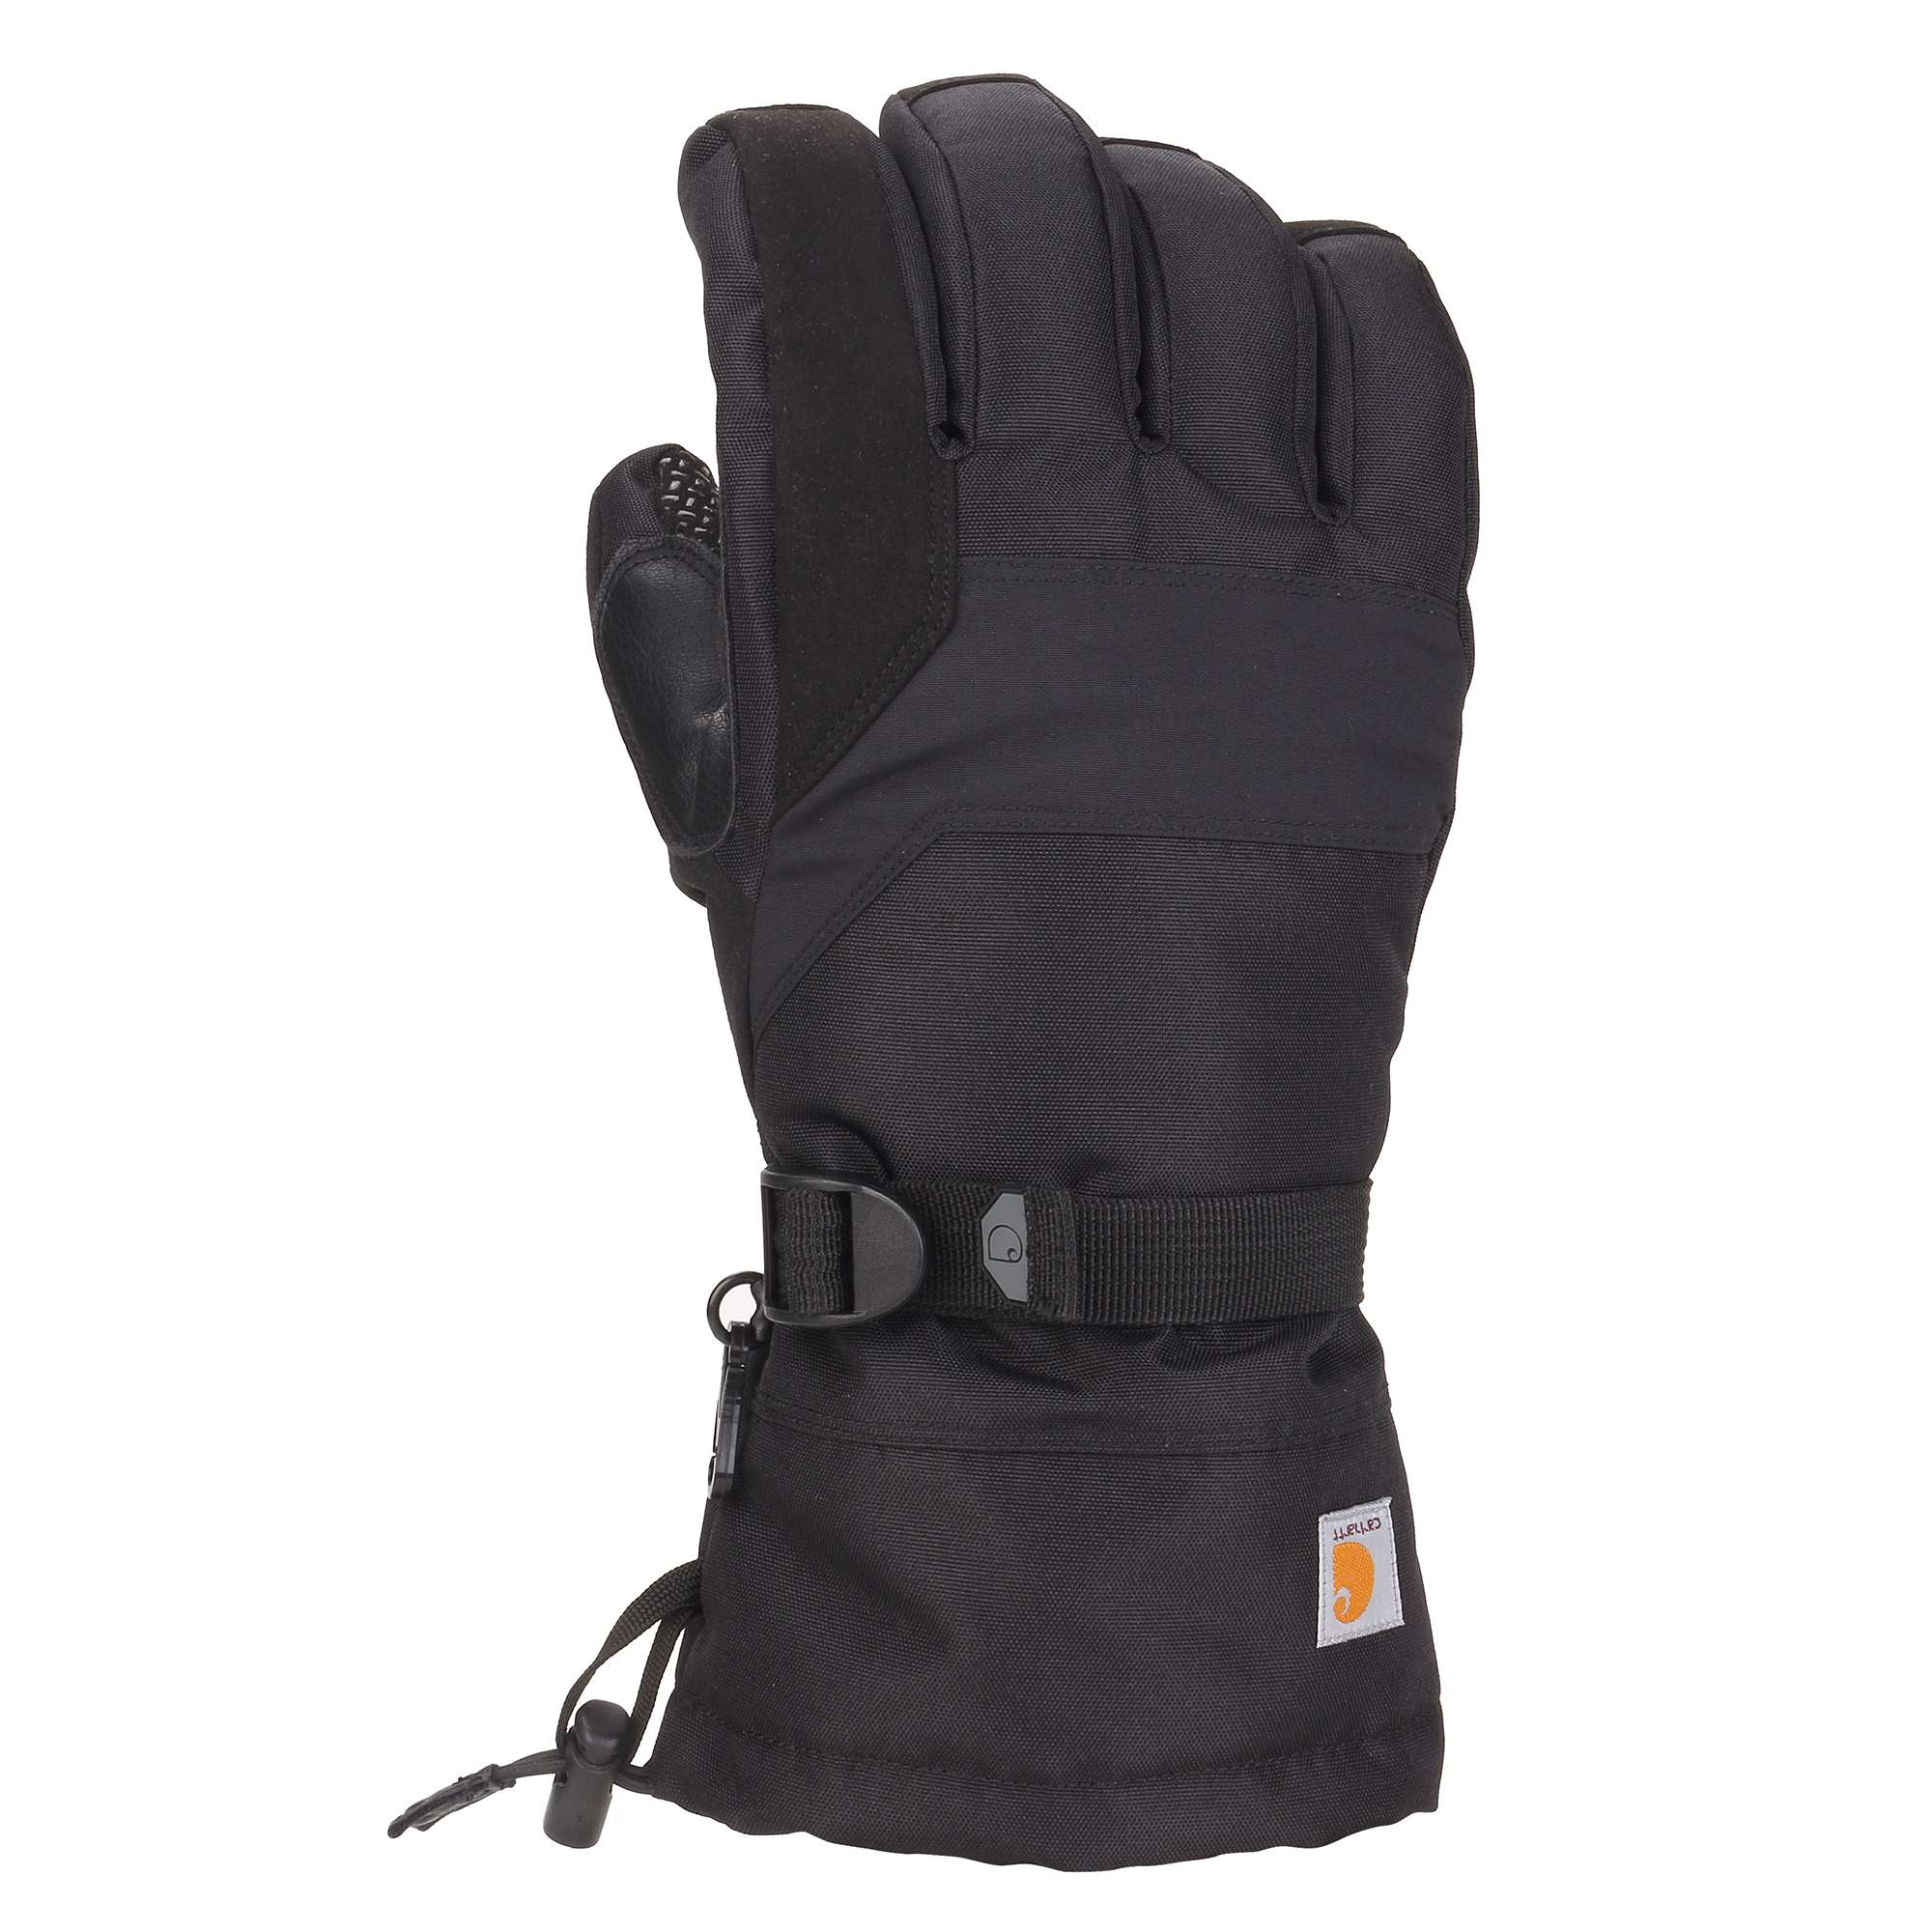 MEN'S FORCE PIPELINE INSULATED GLOVE